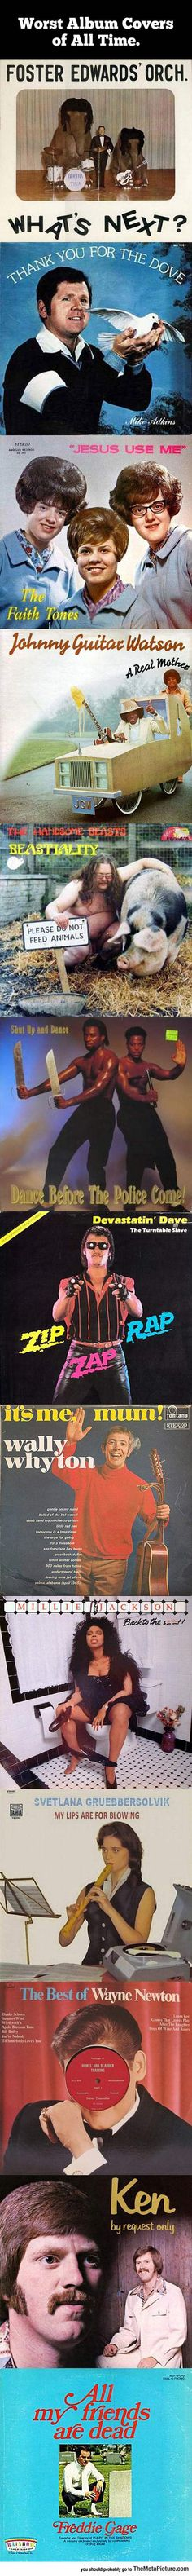 The Worst Album Covers Of All Time